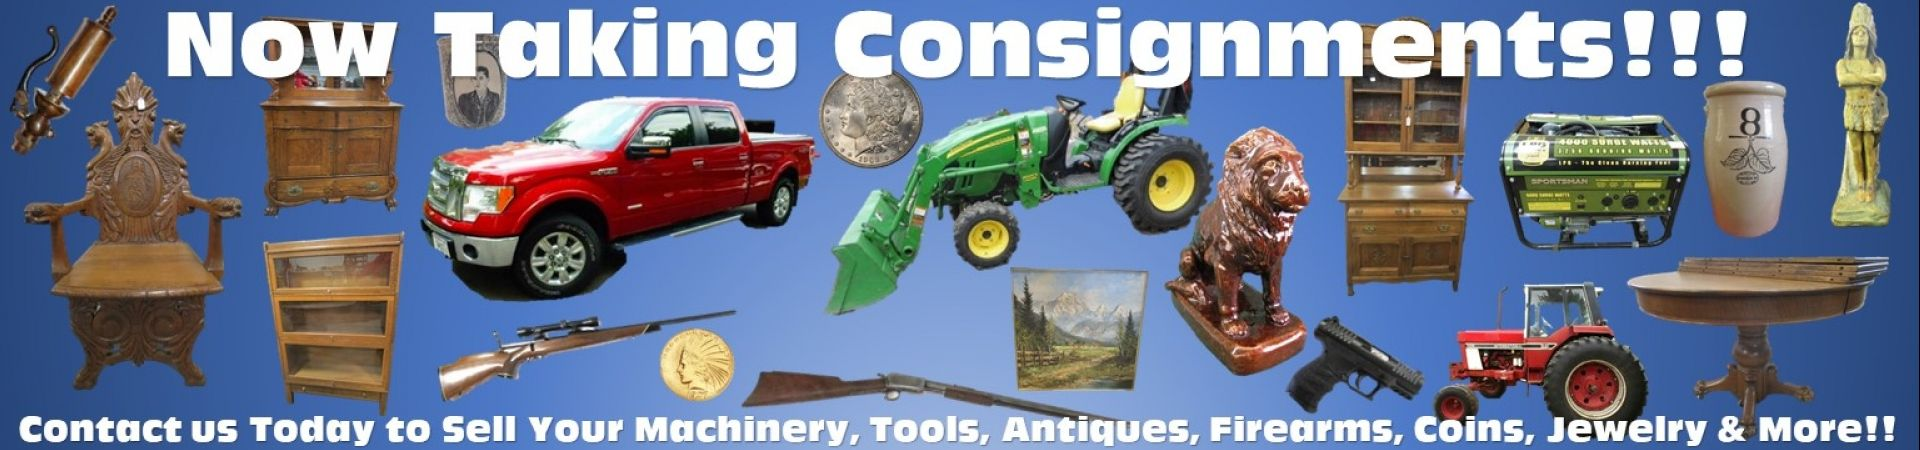 Consign today-2